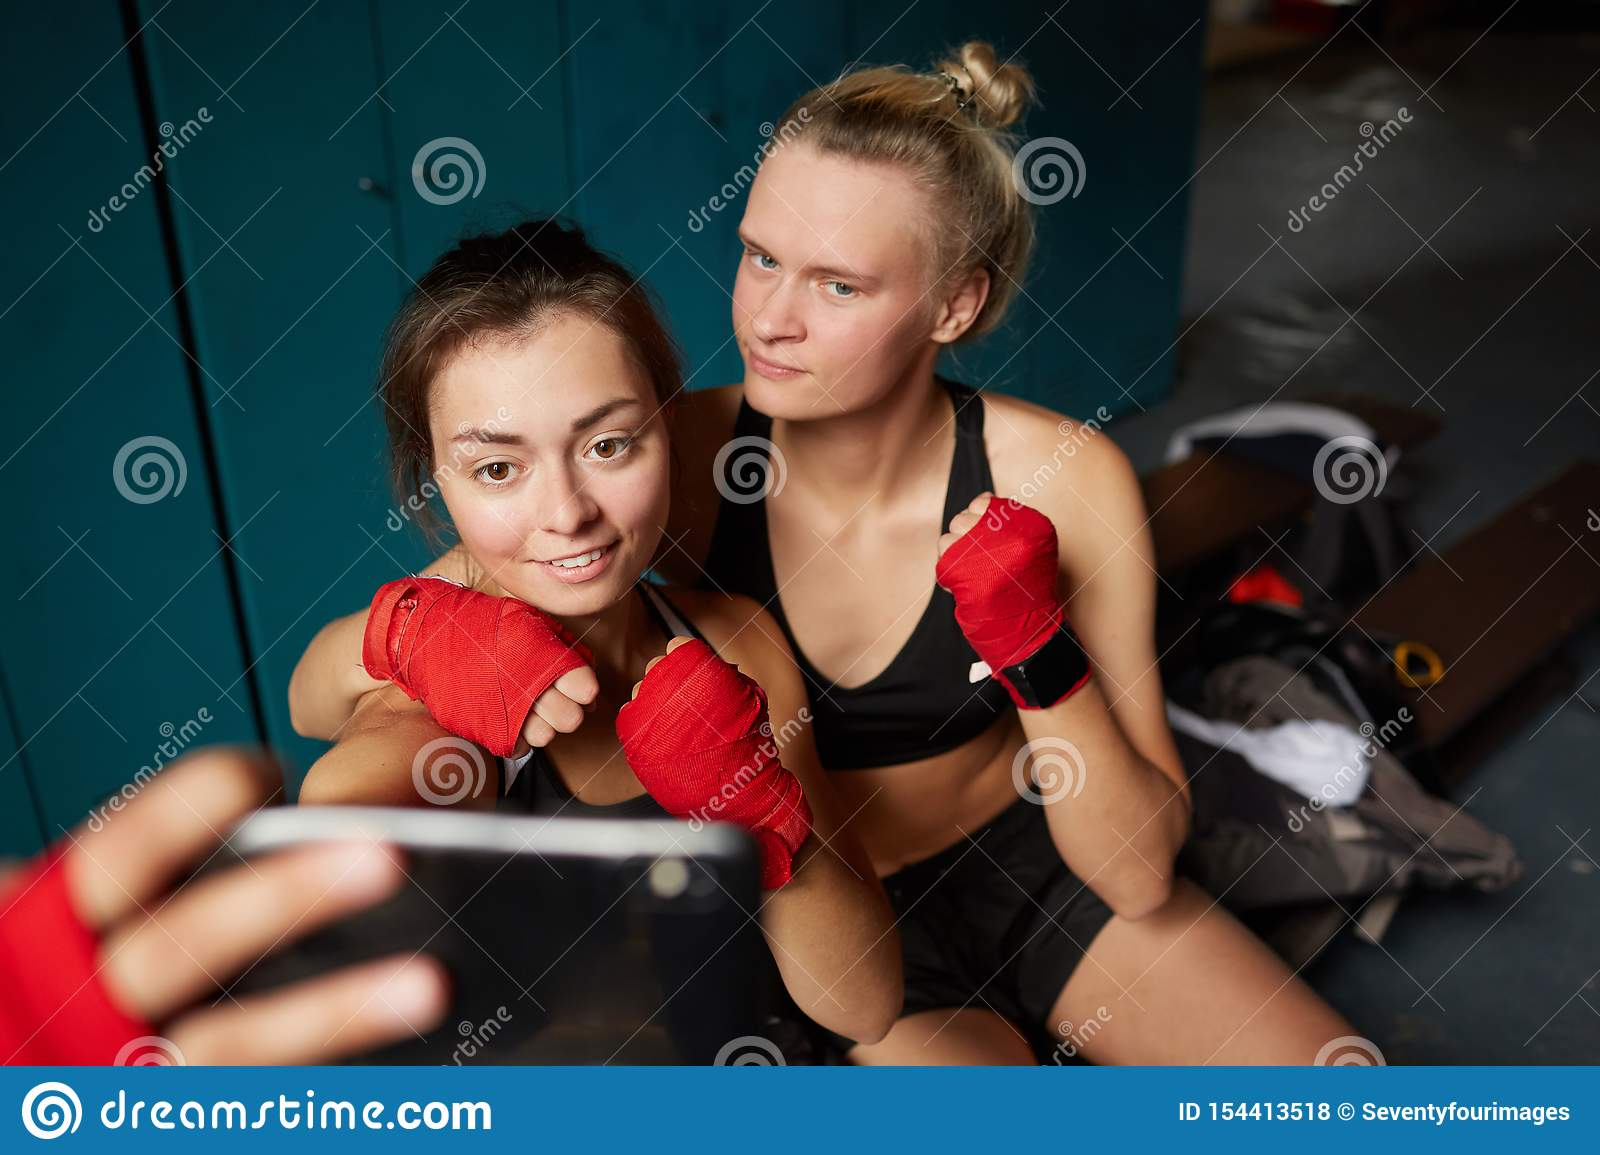 Female Fighters Taking Selfie